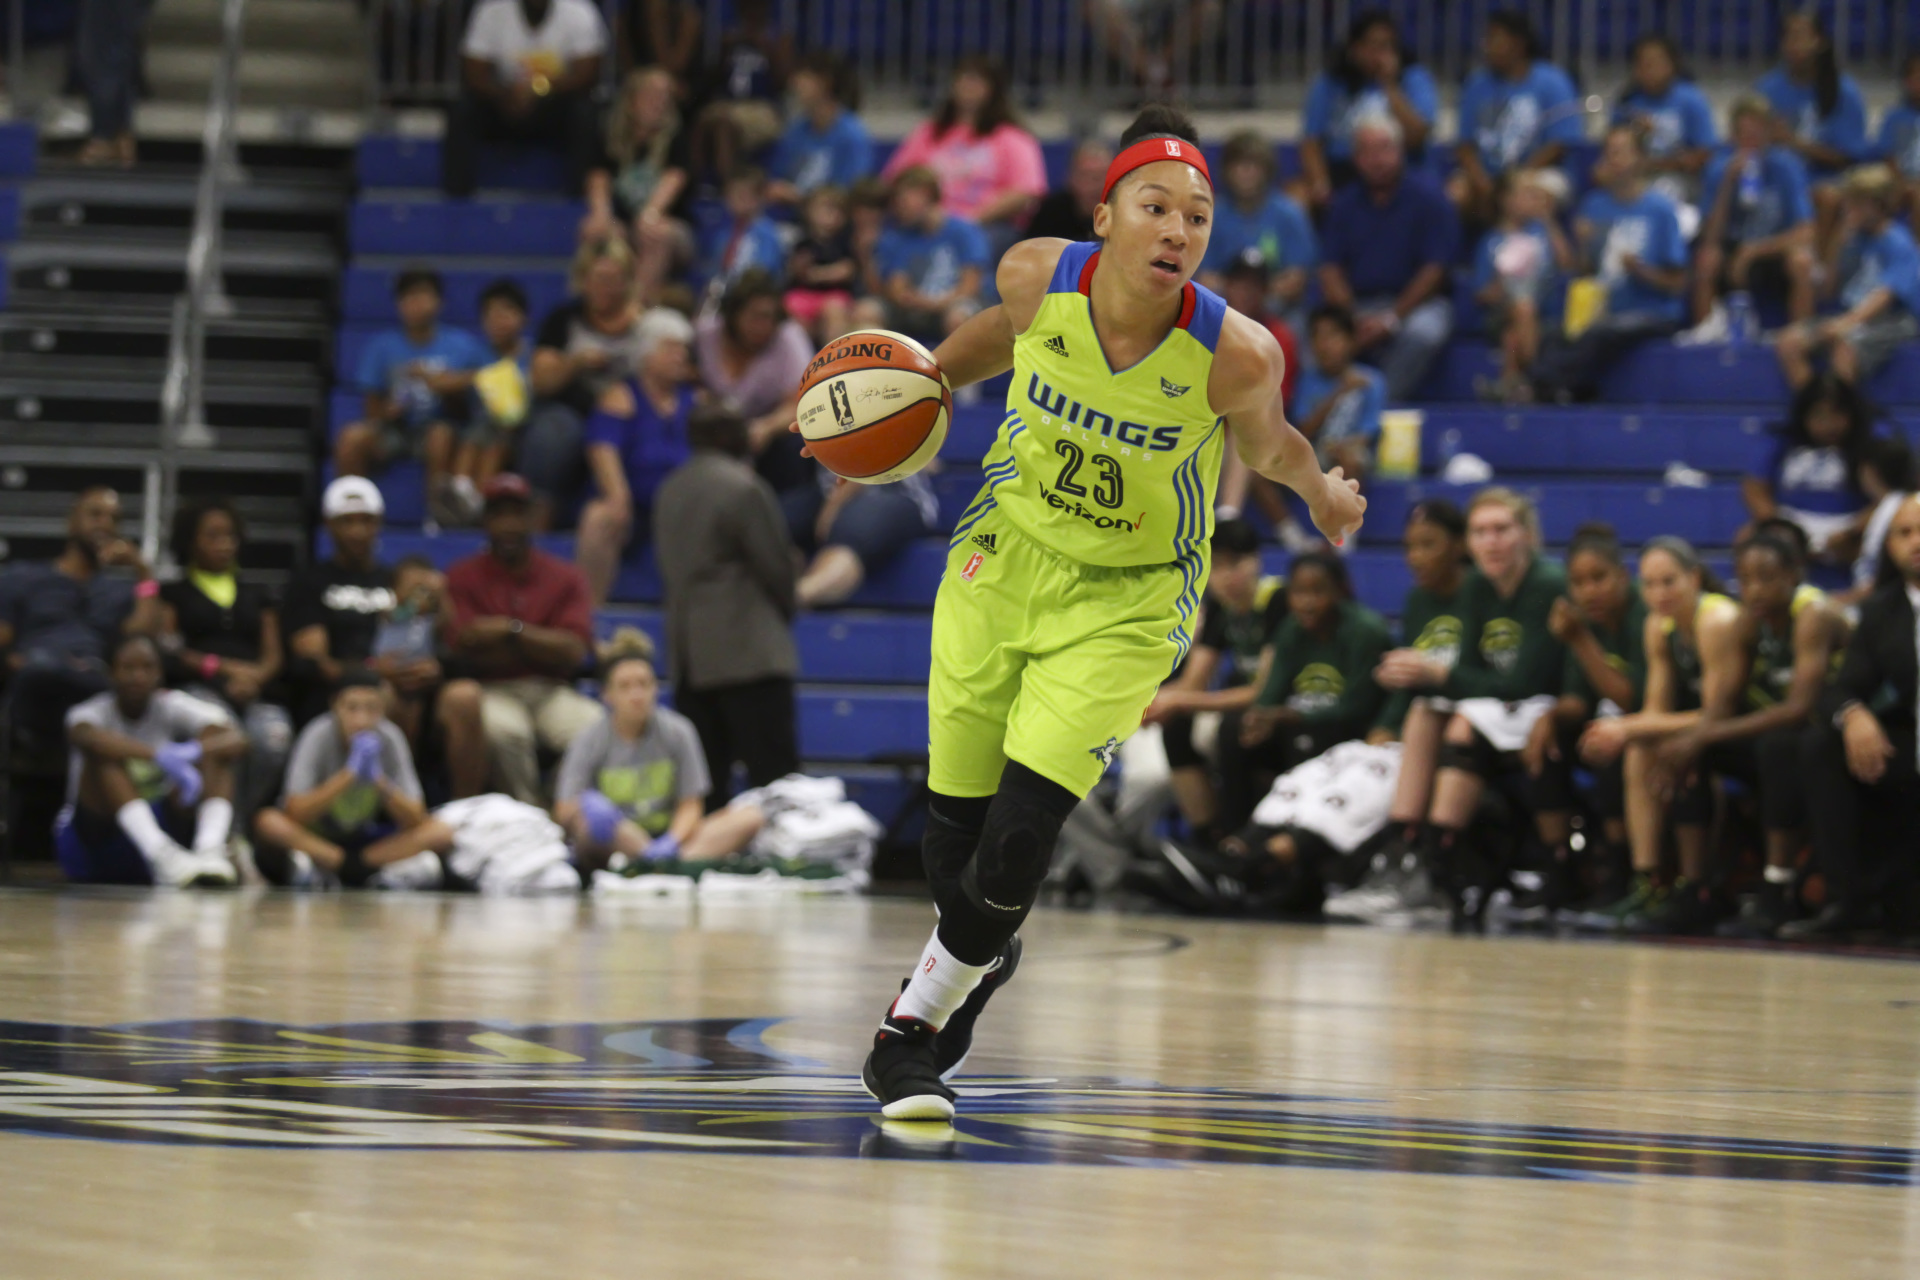 August 4, 2017 - Arlington, TX - The Dallas Wings' Aerial Powers dribbles the ball down the court in the game between the Dallas Wings and Seattle Storm. (Anthony Mazur/AM News Net)